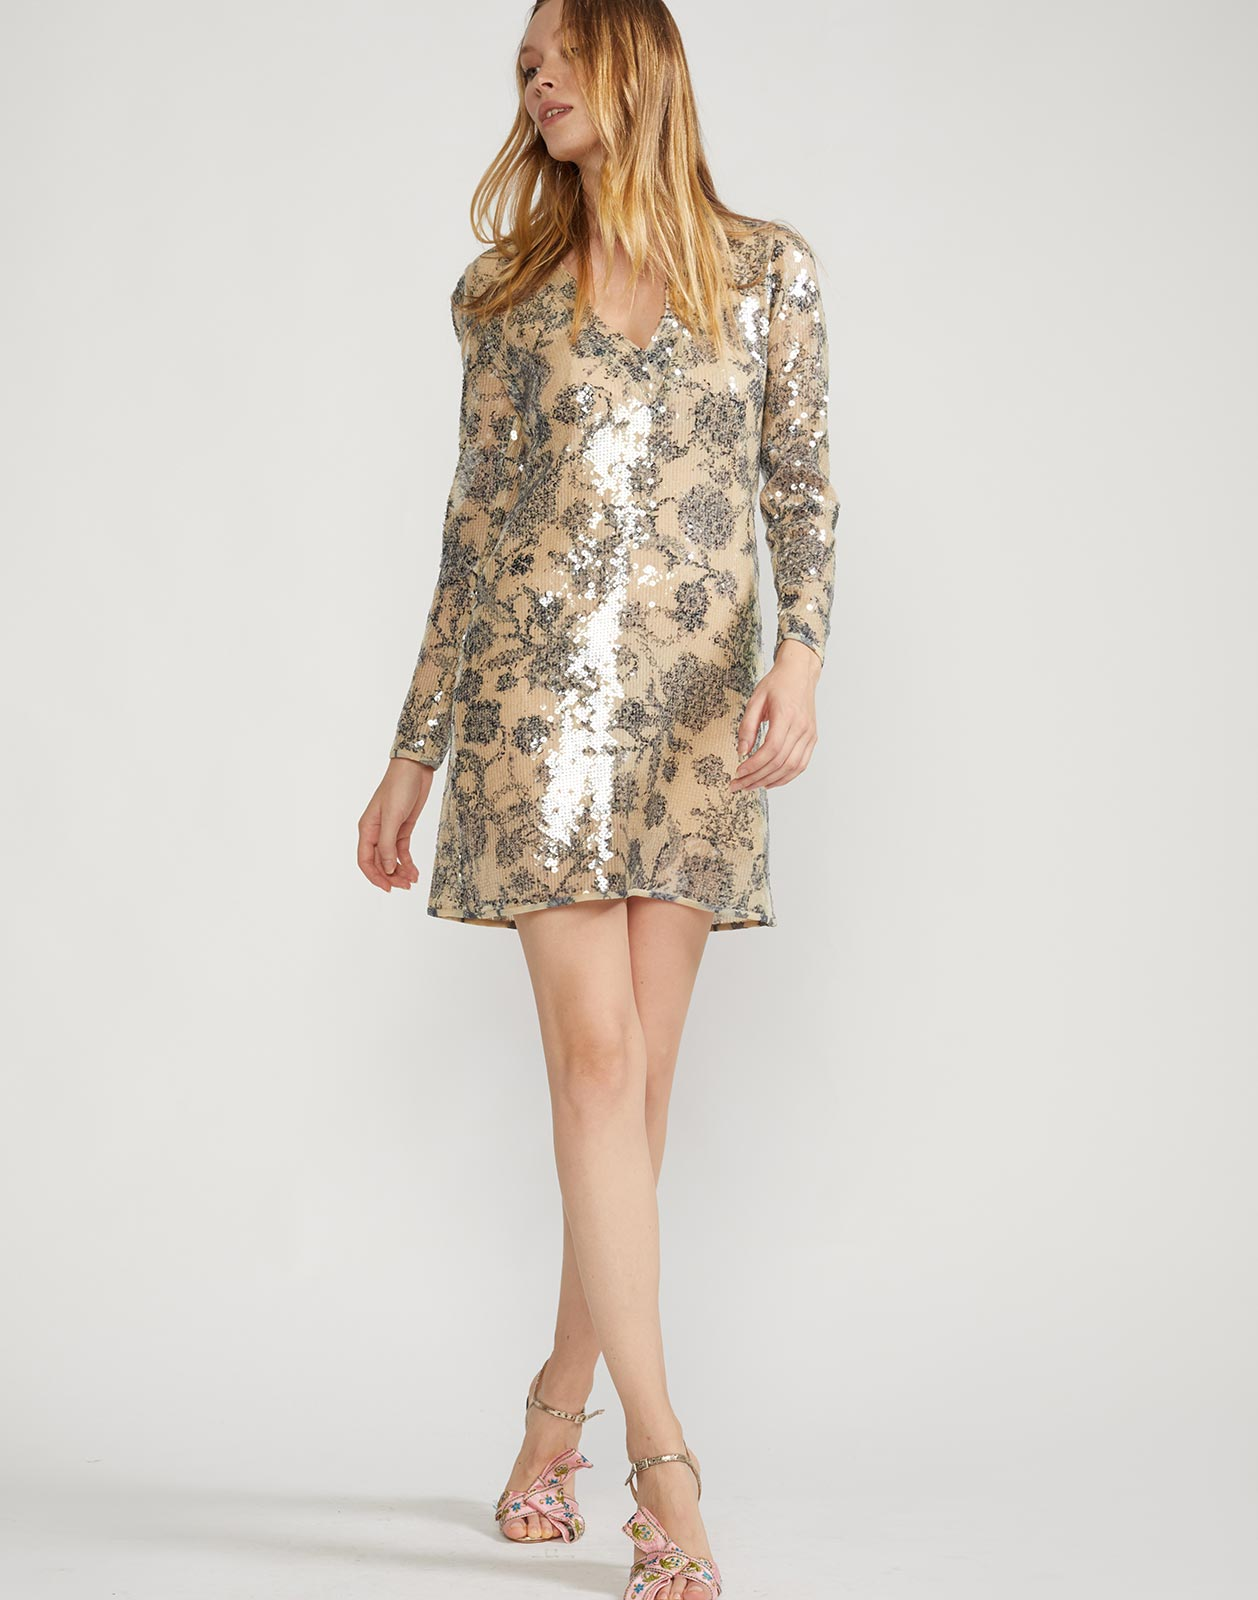 Full view of long sleeve mini dress with floral embroidery